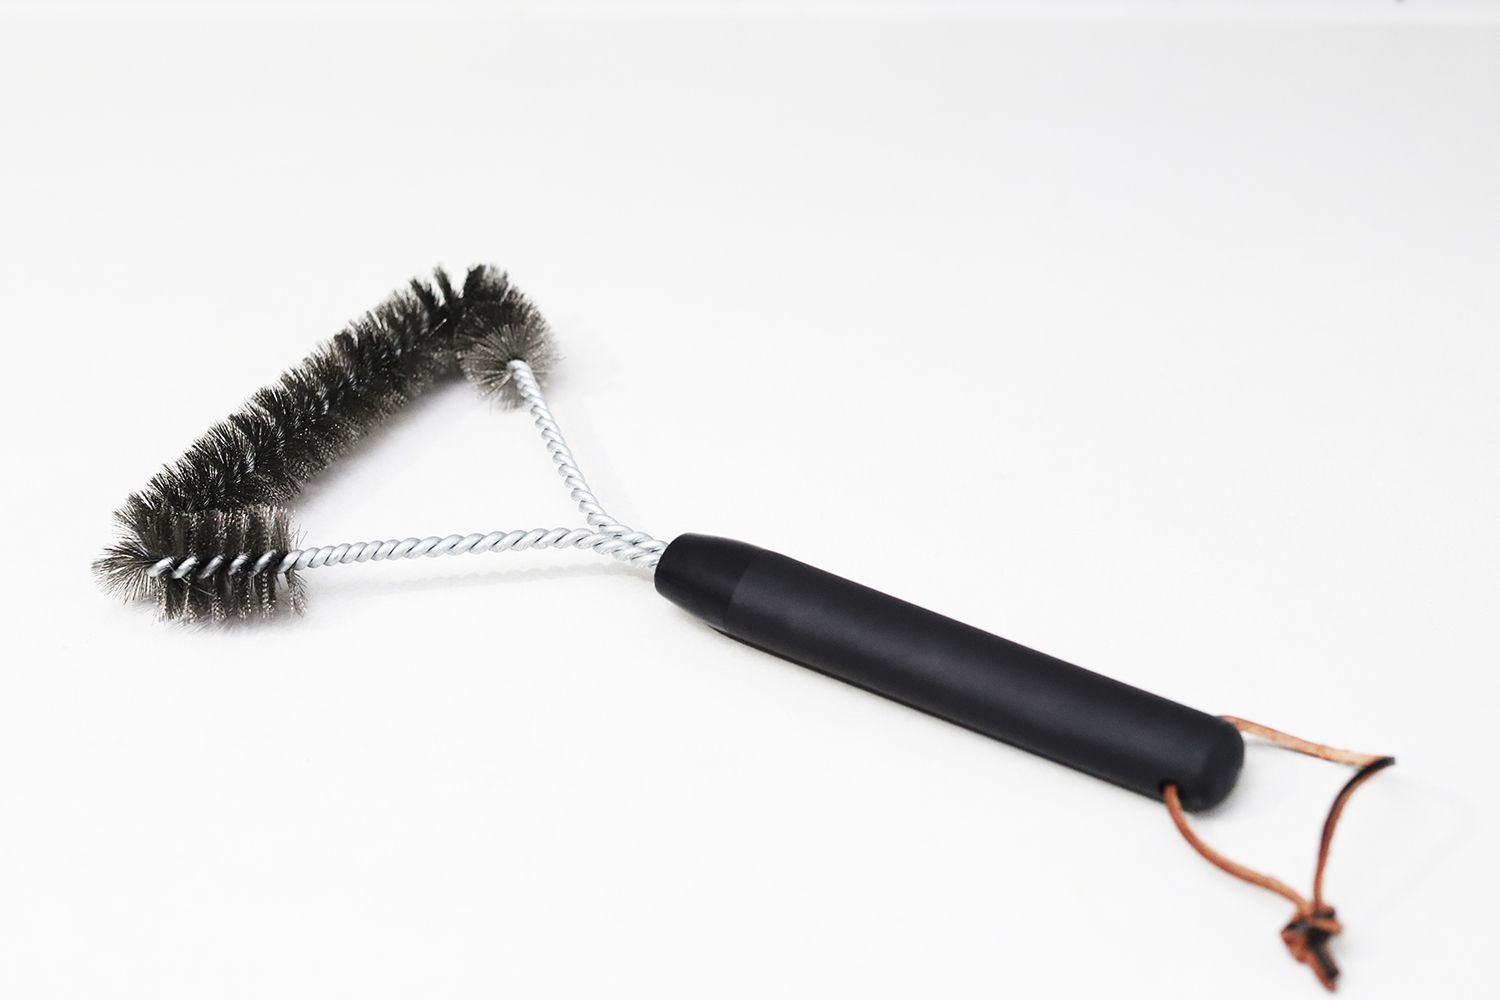 weber-12-inch-3-sided-grill-brush